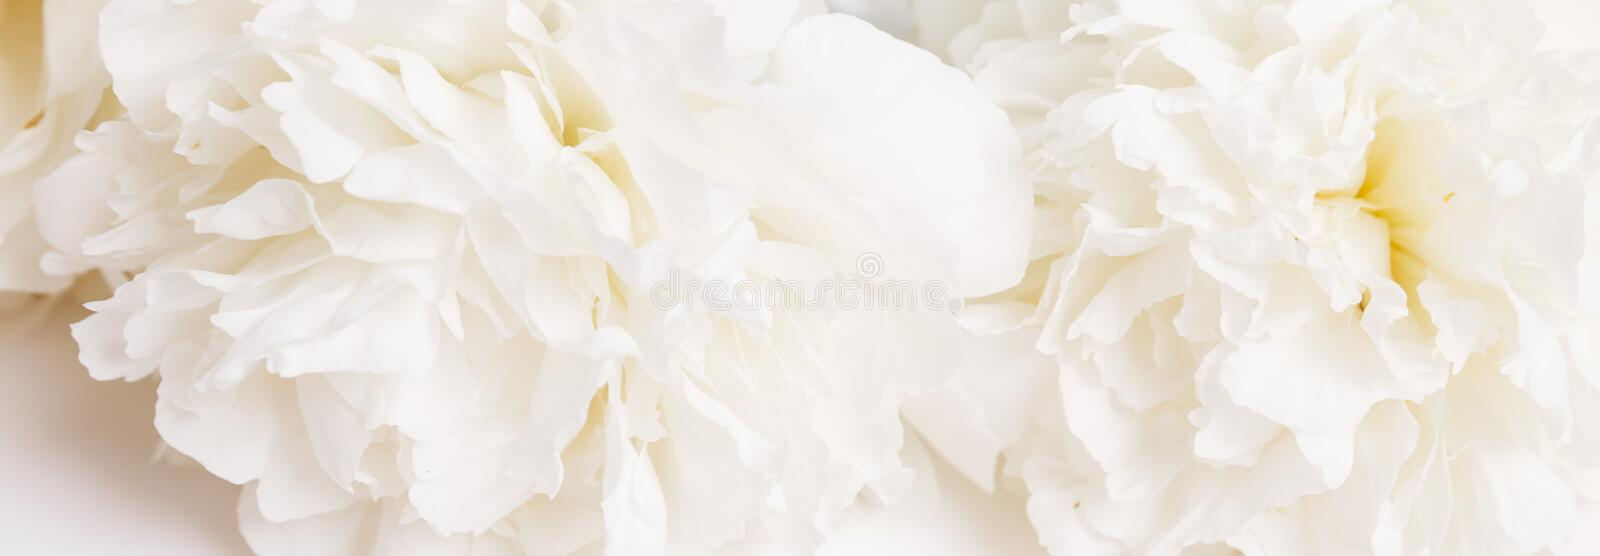 Romantic banner, delicate white peonies flowers close-up. Fragrant pink petals stock image